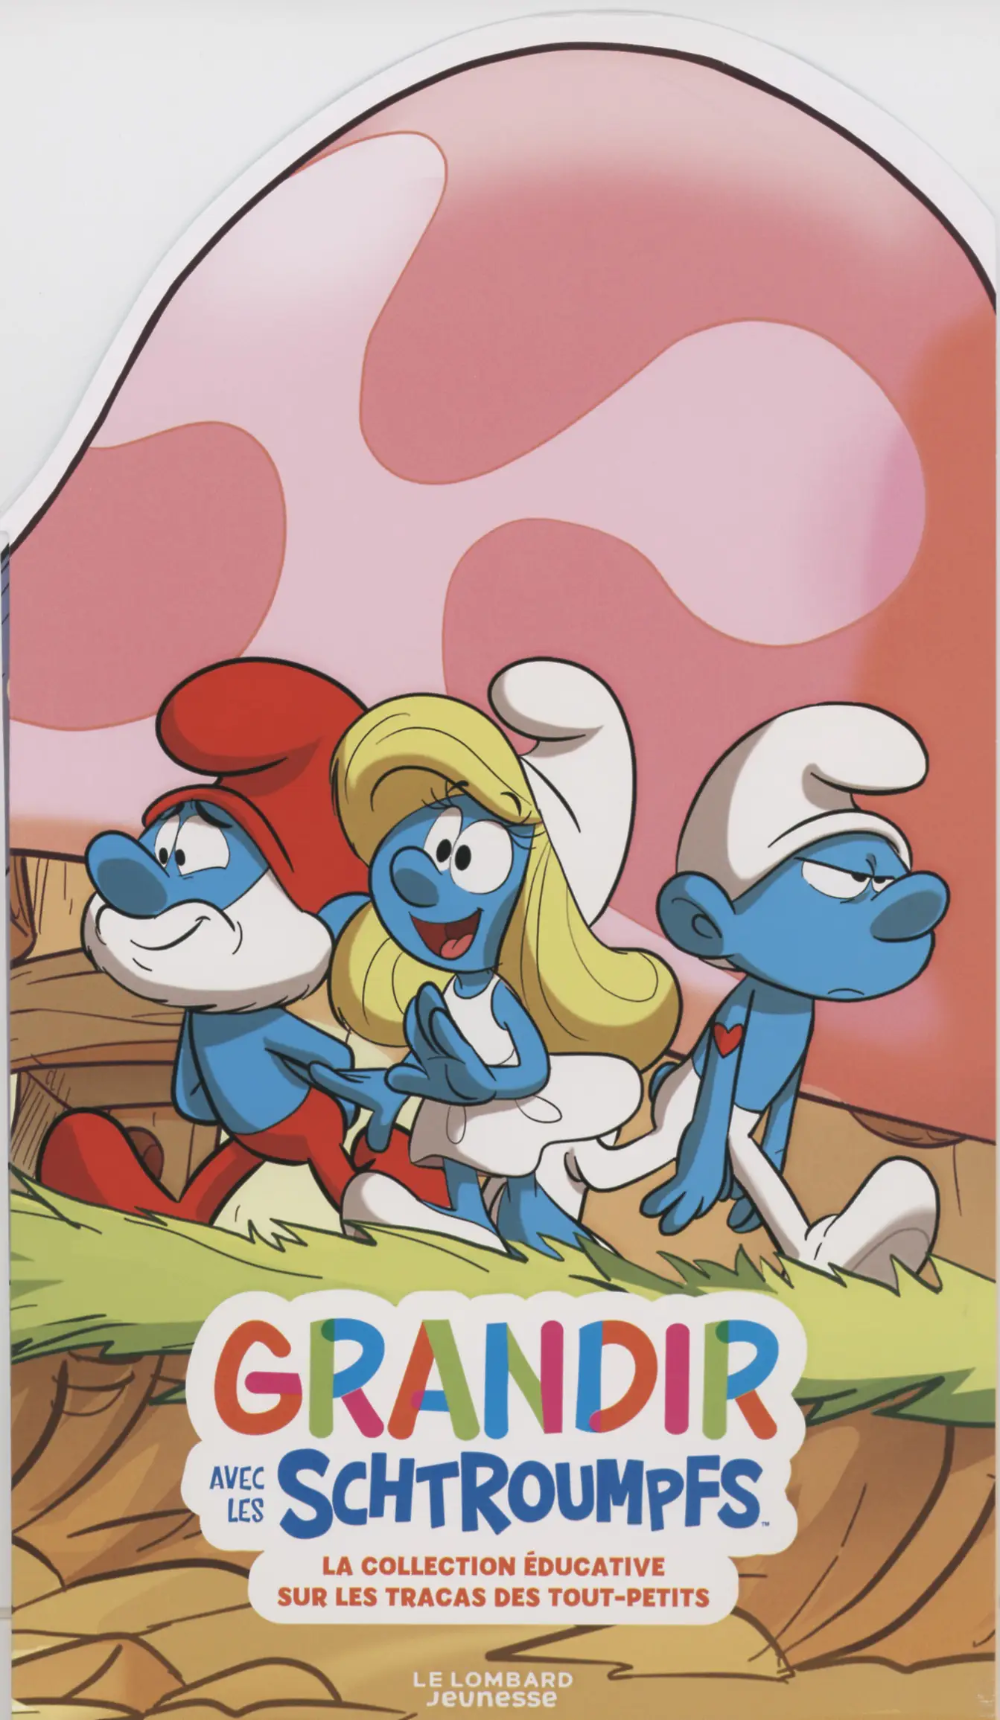 Growing up with the Smurfs, nice friends  Les schtroumpfs, Gentil